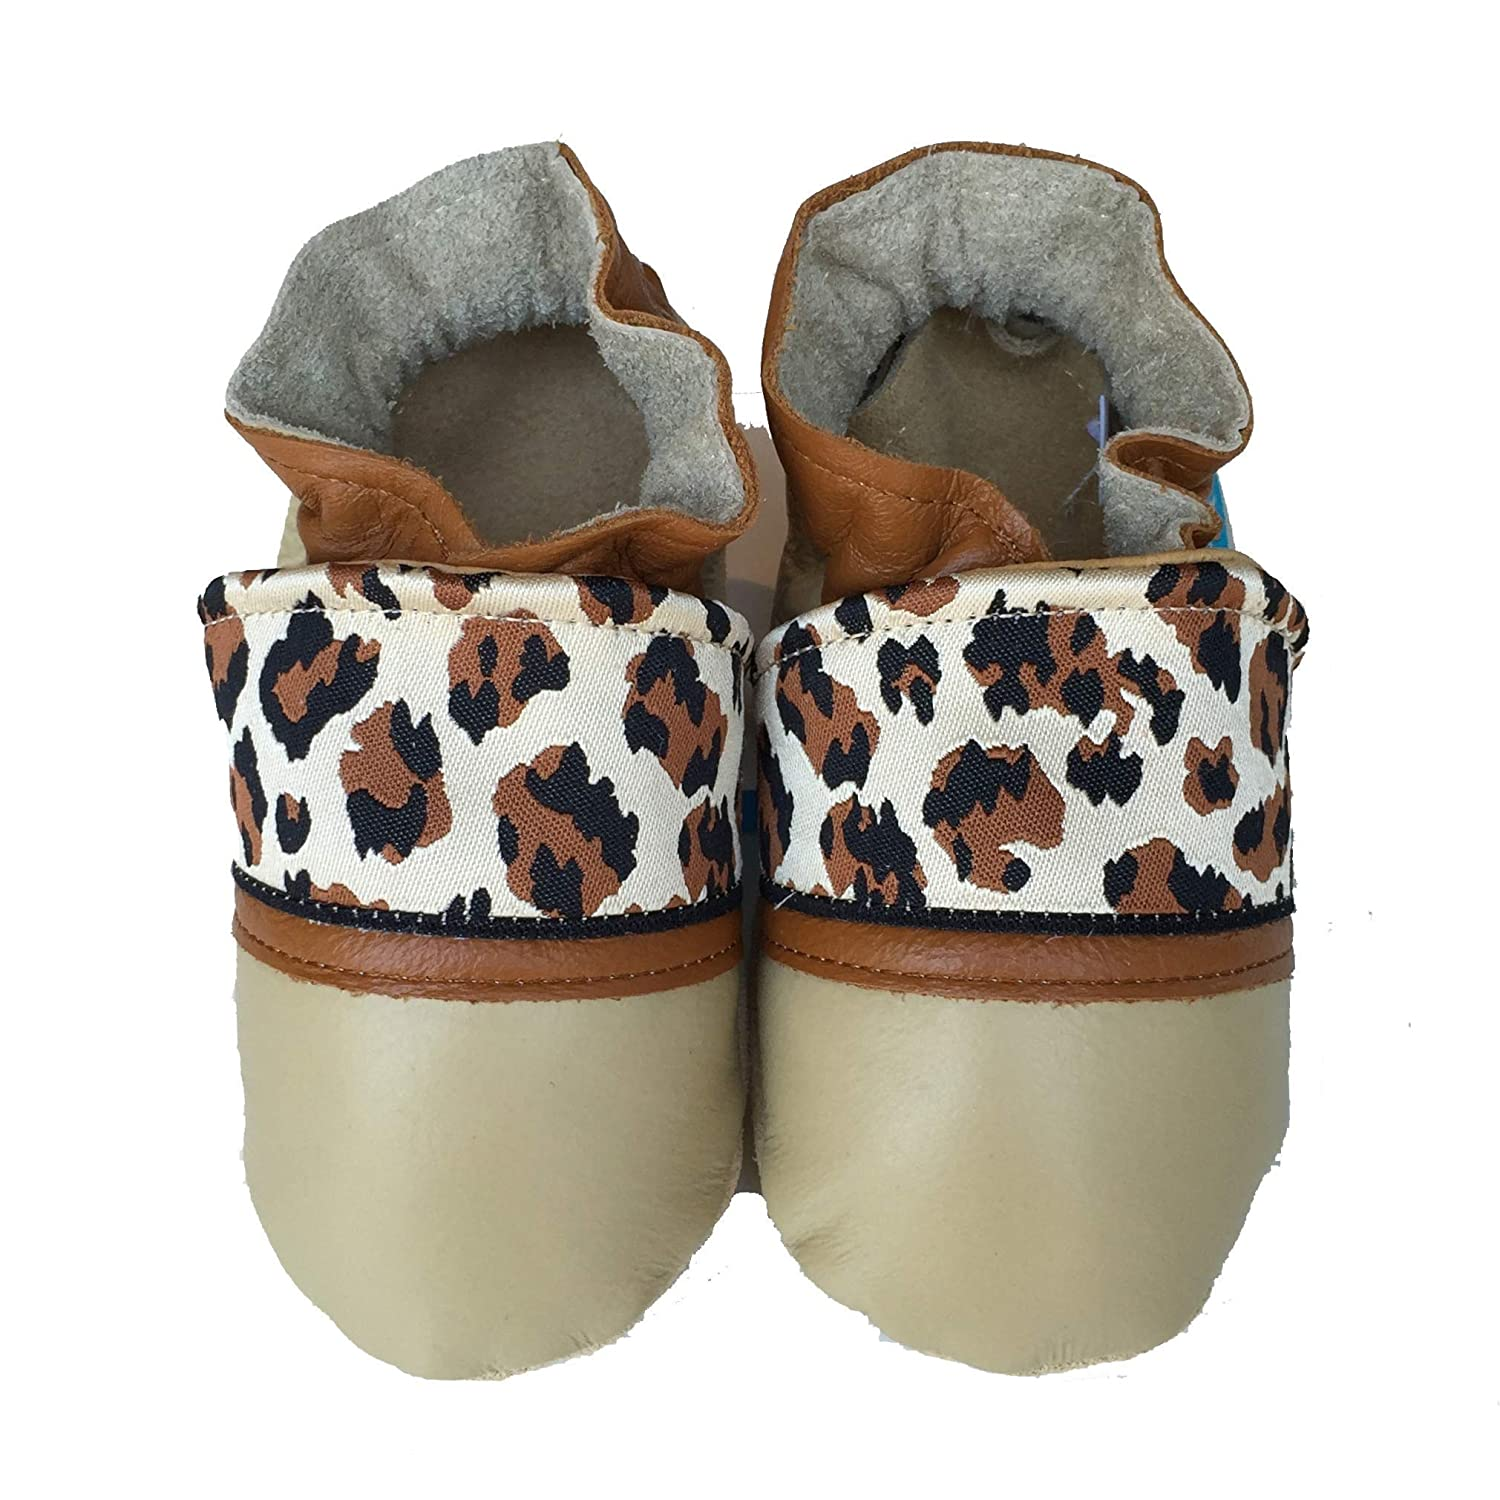 JUNGLE CAT Handmade in USA All-Natural Time sale Time sale Baby Leather Shoes. Sma